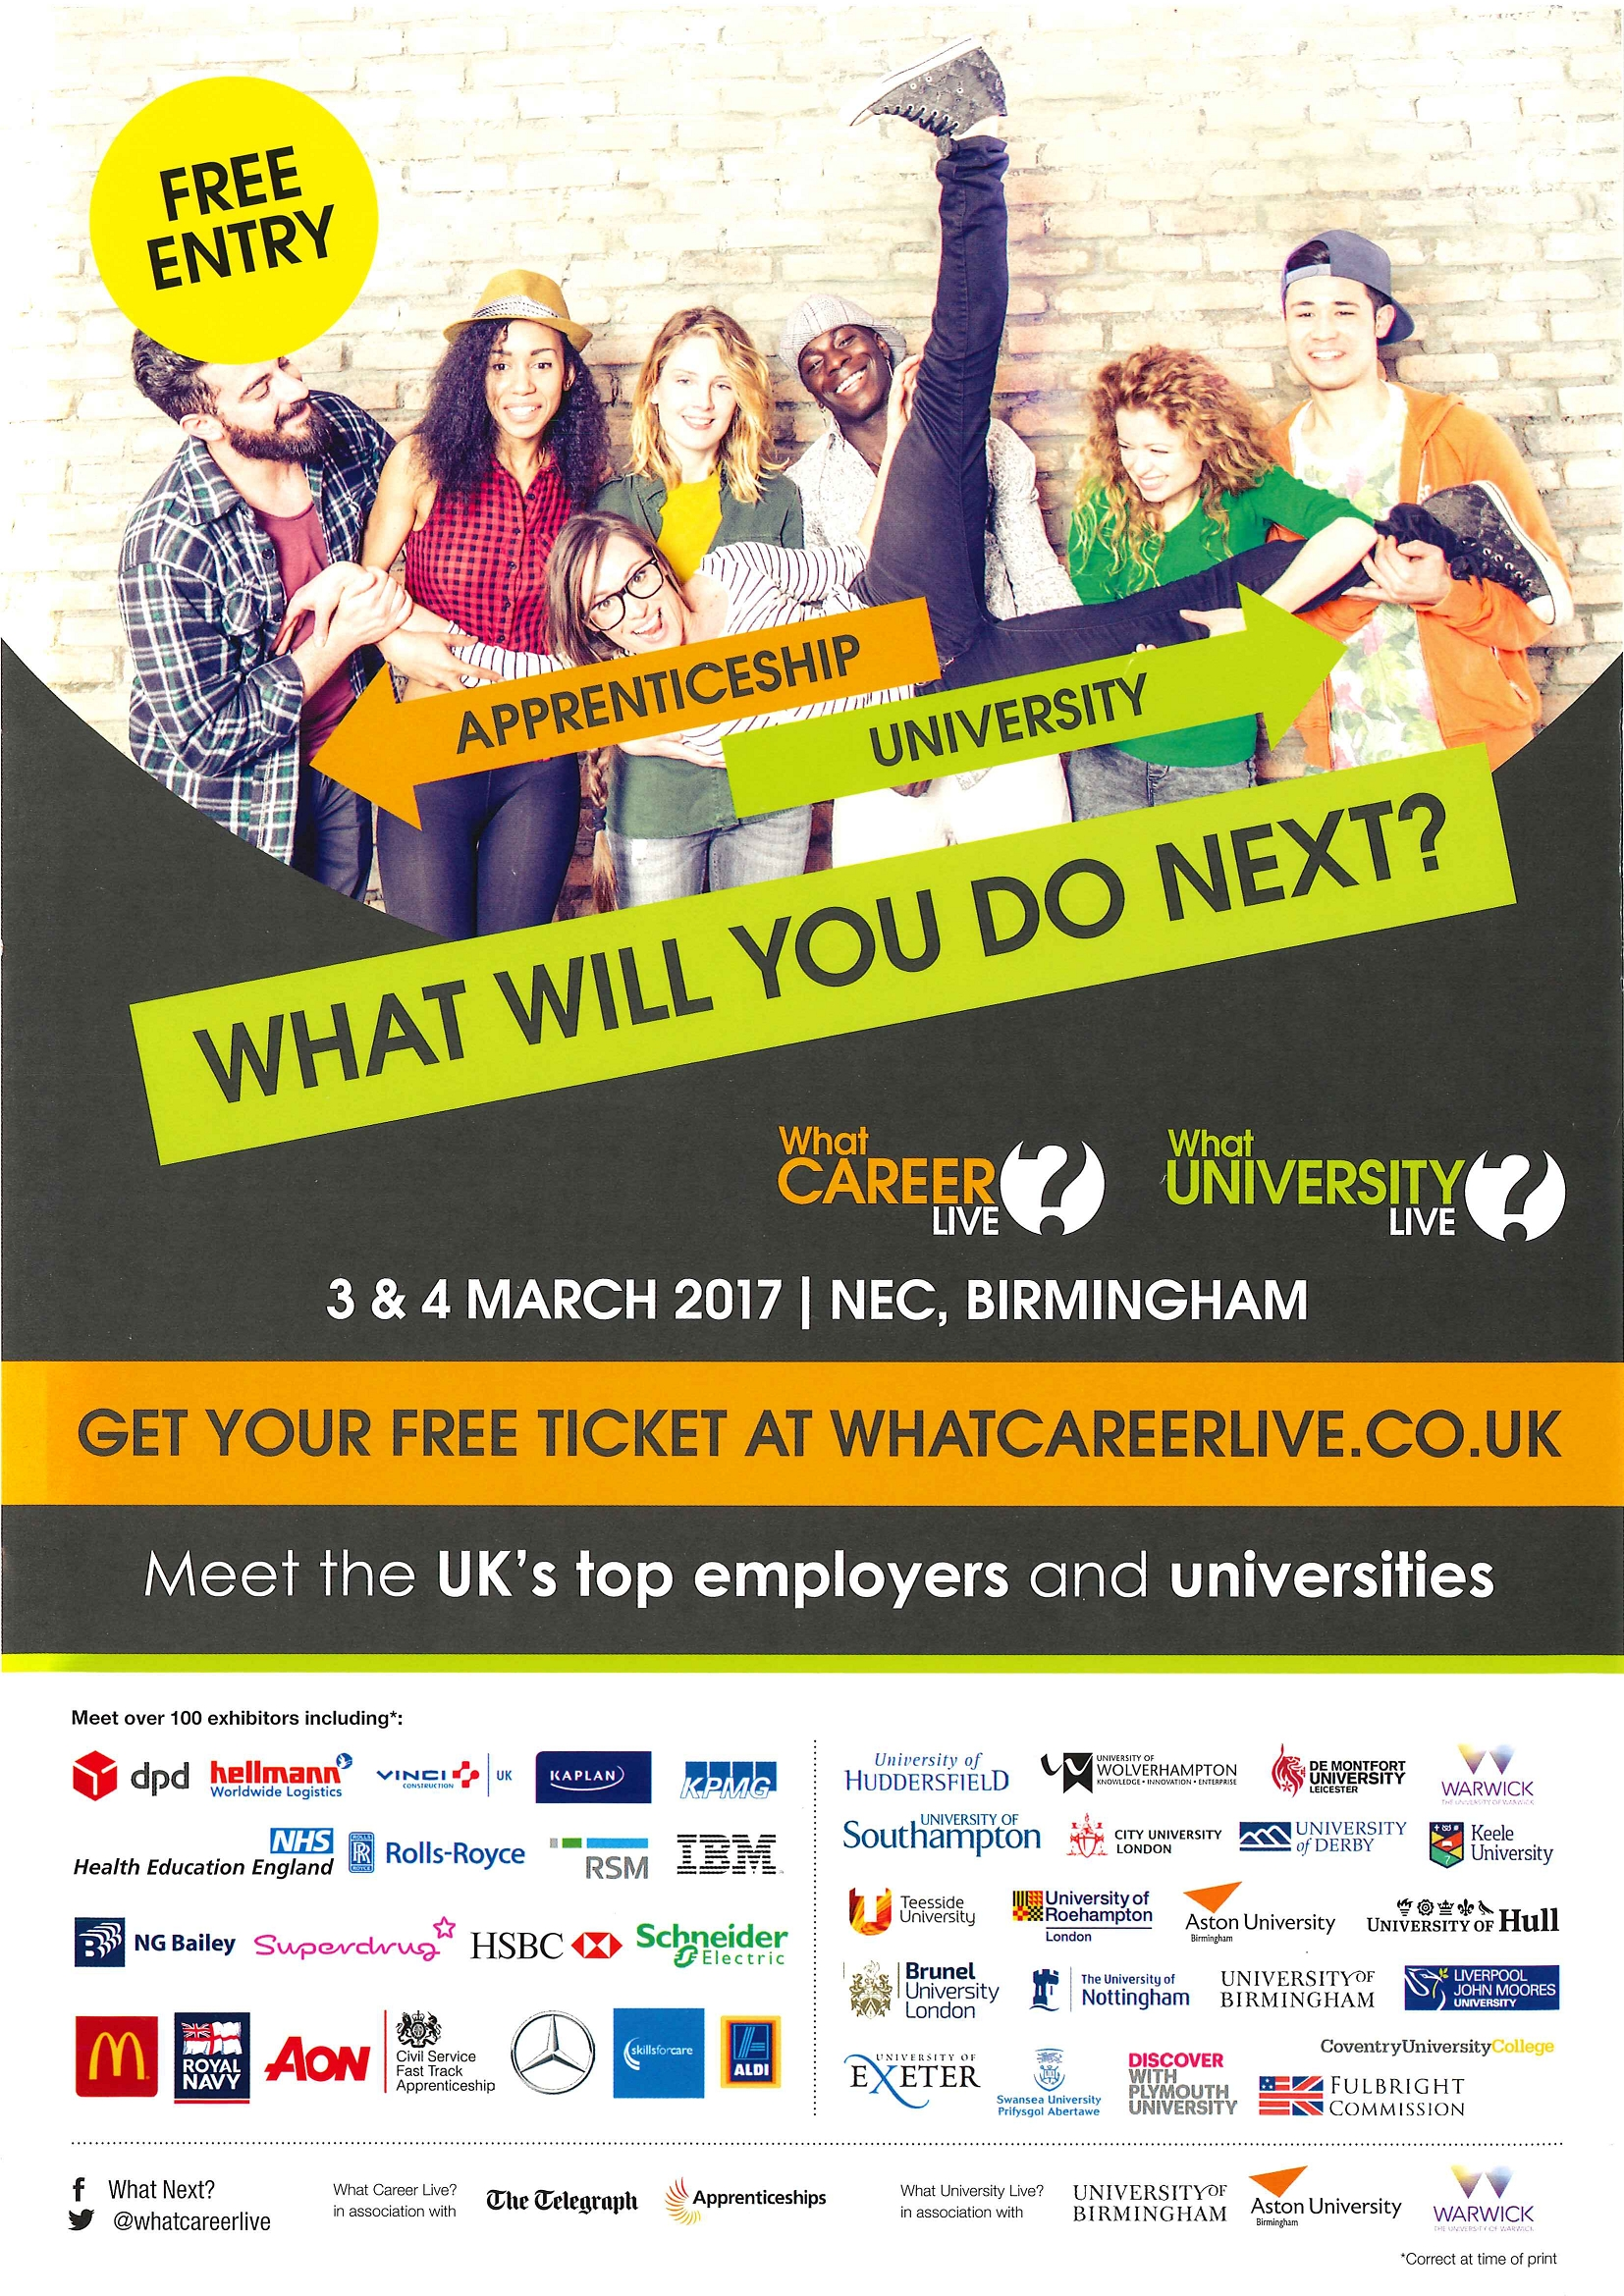 What Career Live and What University Live at the NEC 3 & 4